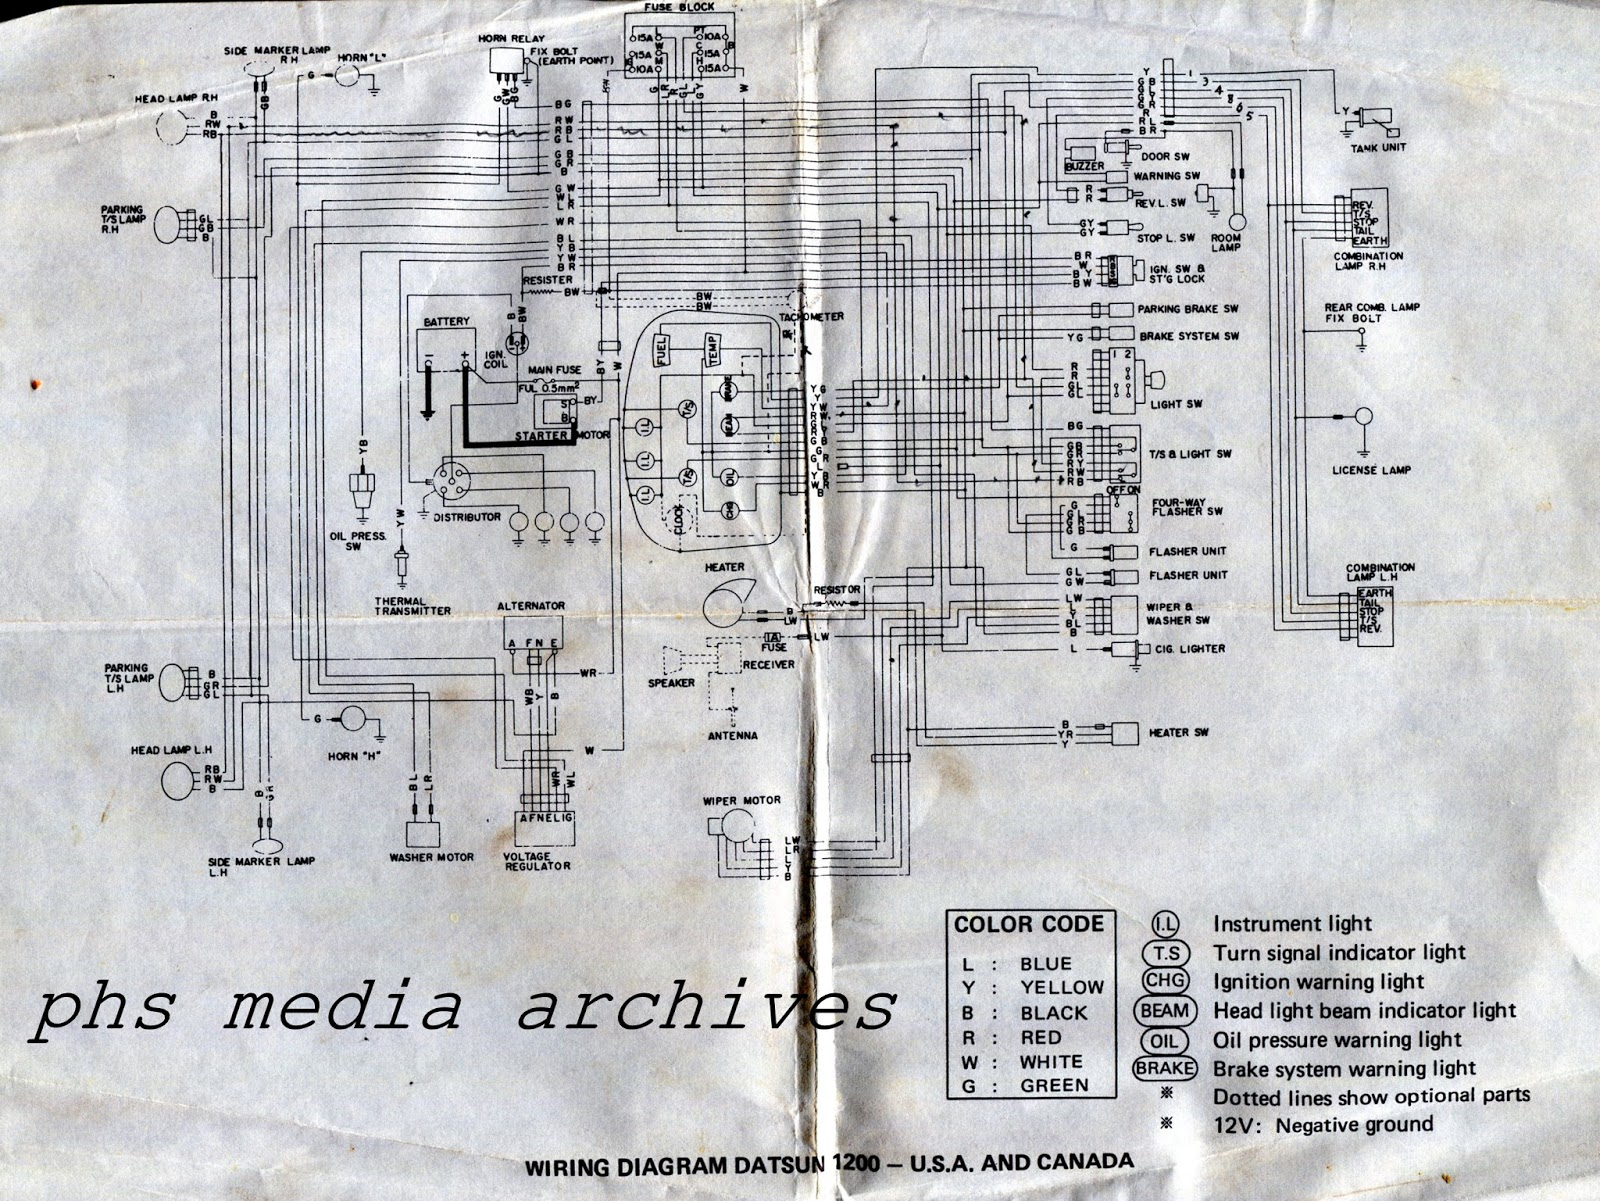 medium resolution of datsun 521 wiring diagram schematic diagram downloaddatsun 521 wiring diagram oue granite decor uk